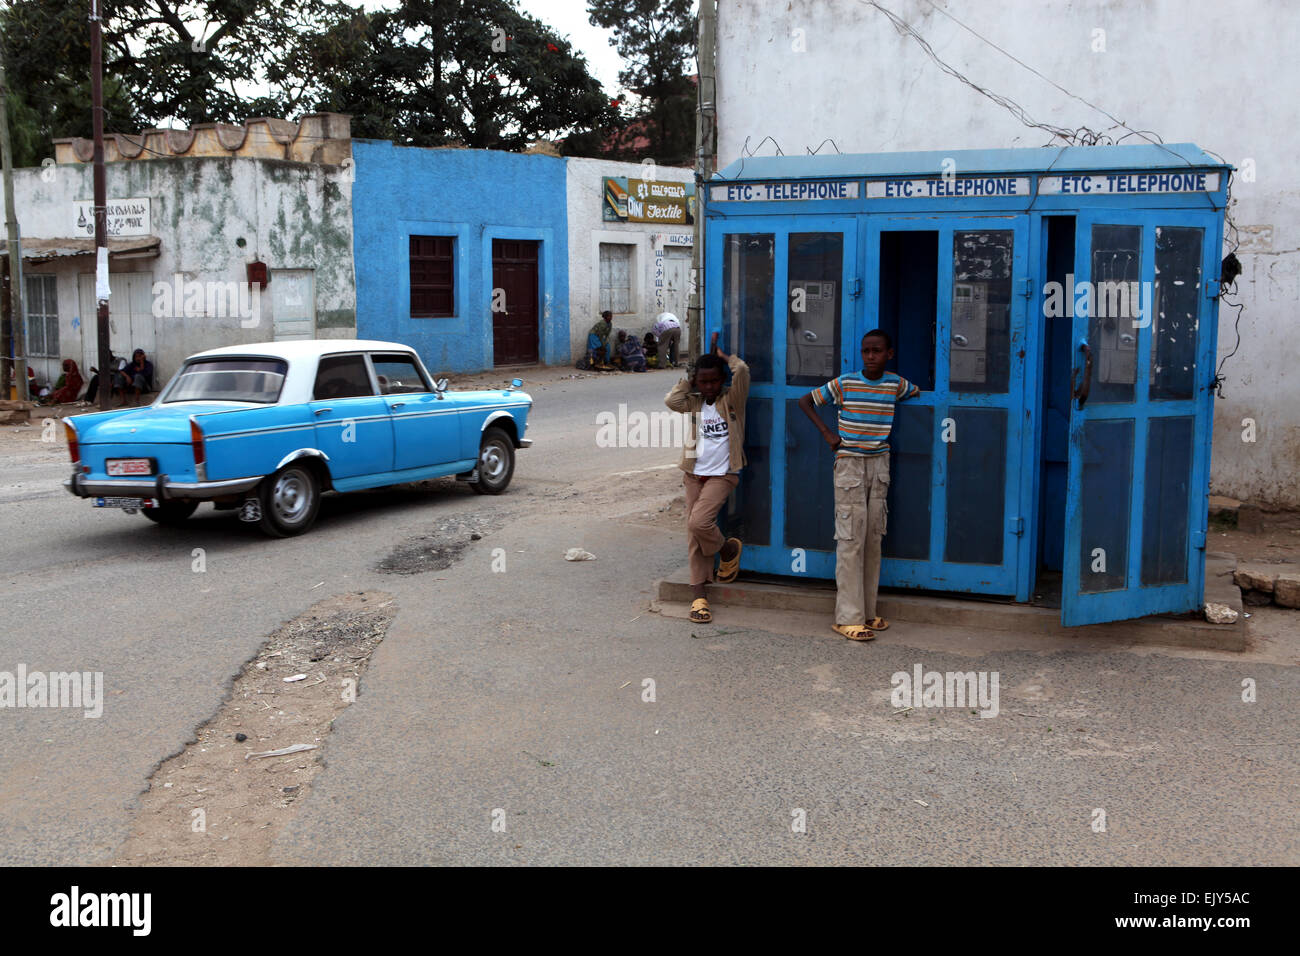 Phone booth and taxi, Harar, East Ethiopia. - Stock Image